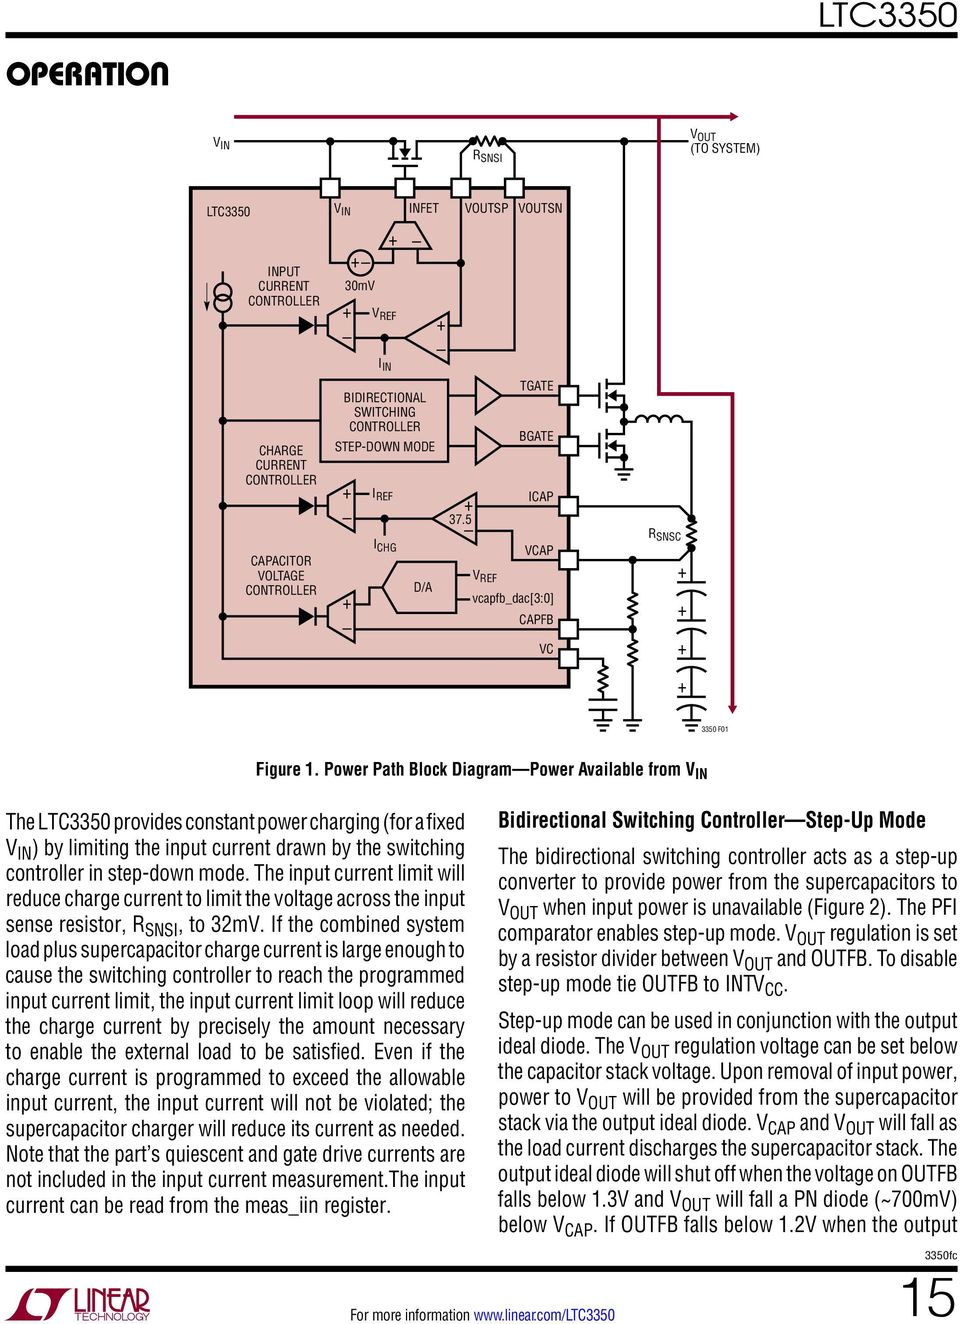 High Current Supercapacitor Backup Controller And System Monitor Figure 1 Charger Power Path Block Diagram Available From V In The Provides Constant Charging For